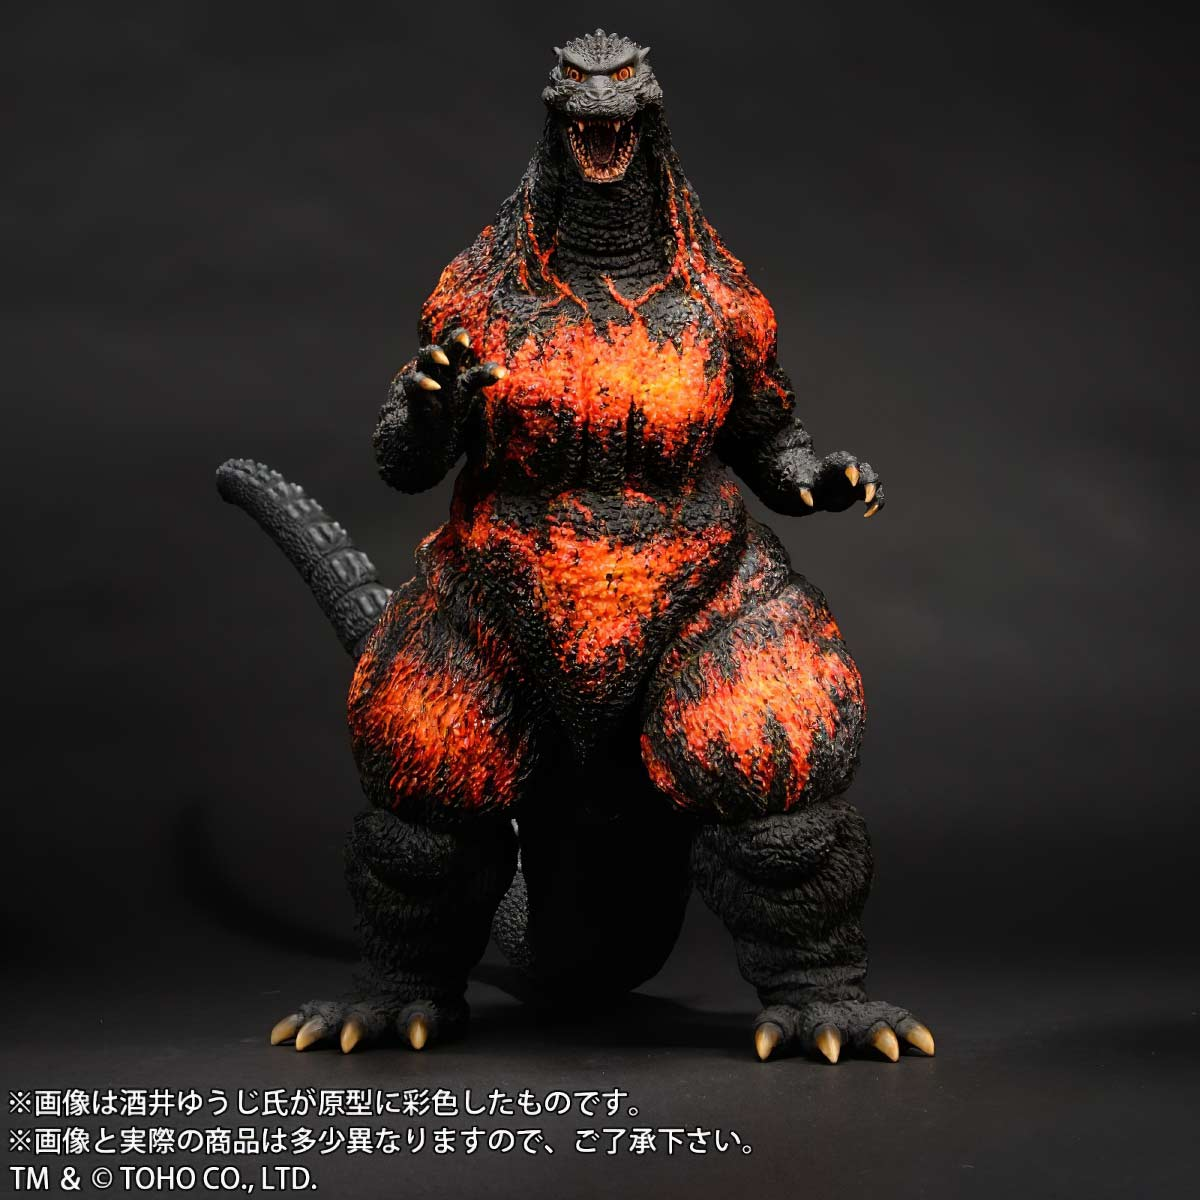 Front view of the 30cm Series Yuji Sakai Modeling Collection Godzilla 1995 Standard vinyl figure by X-Plus.